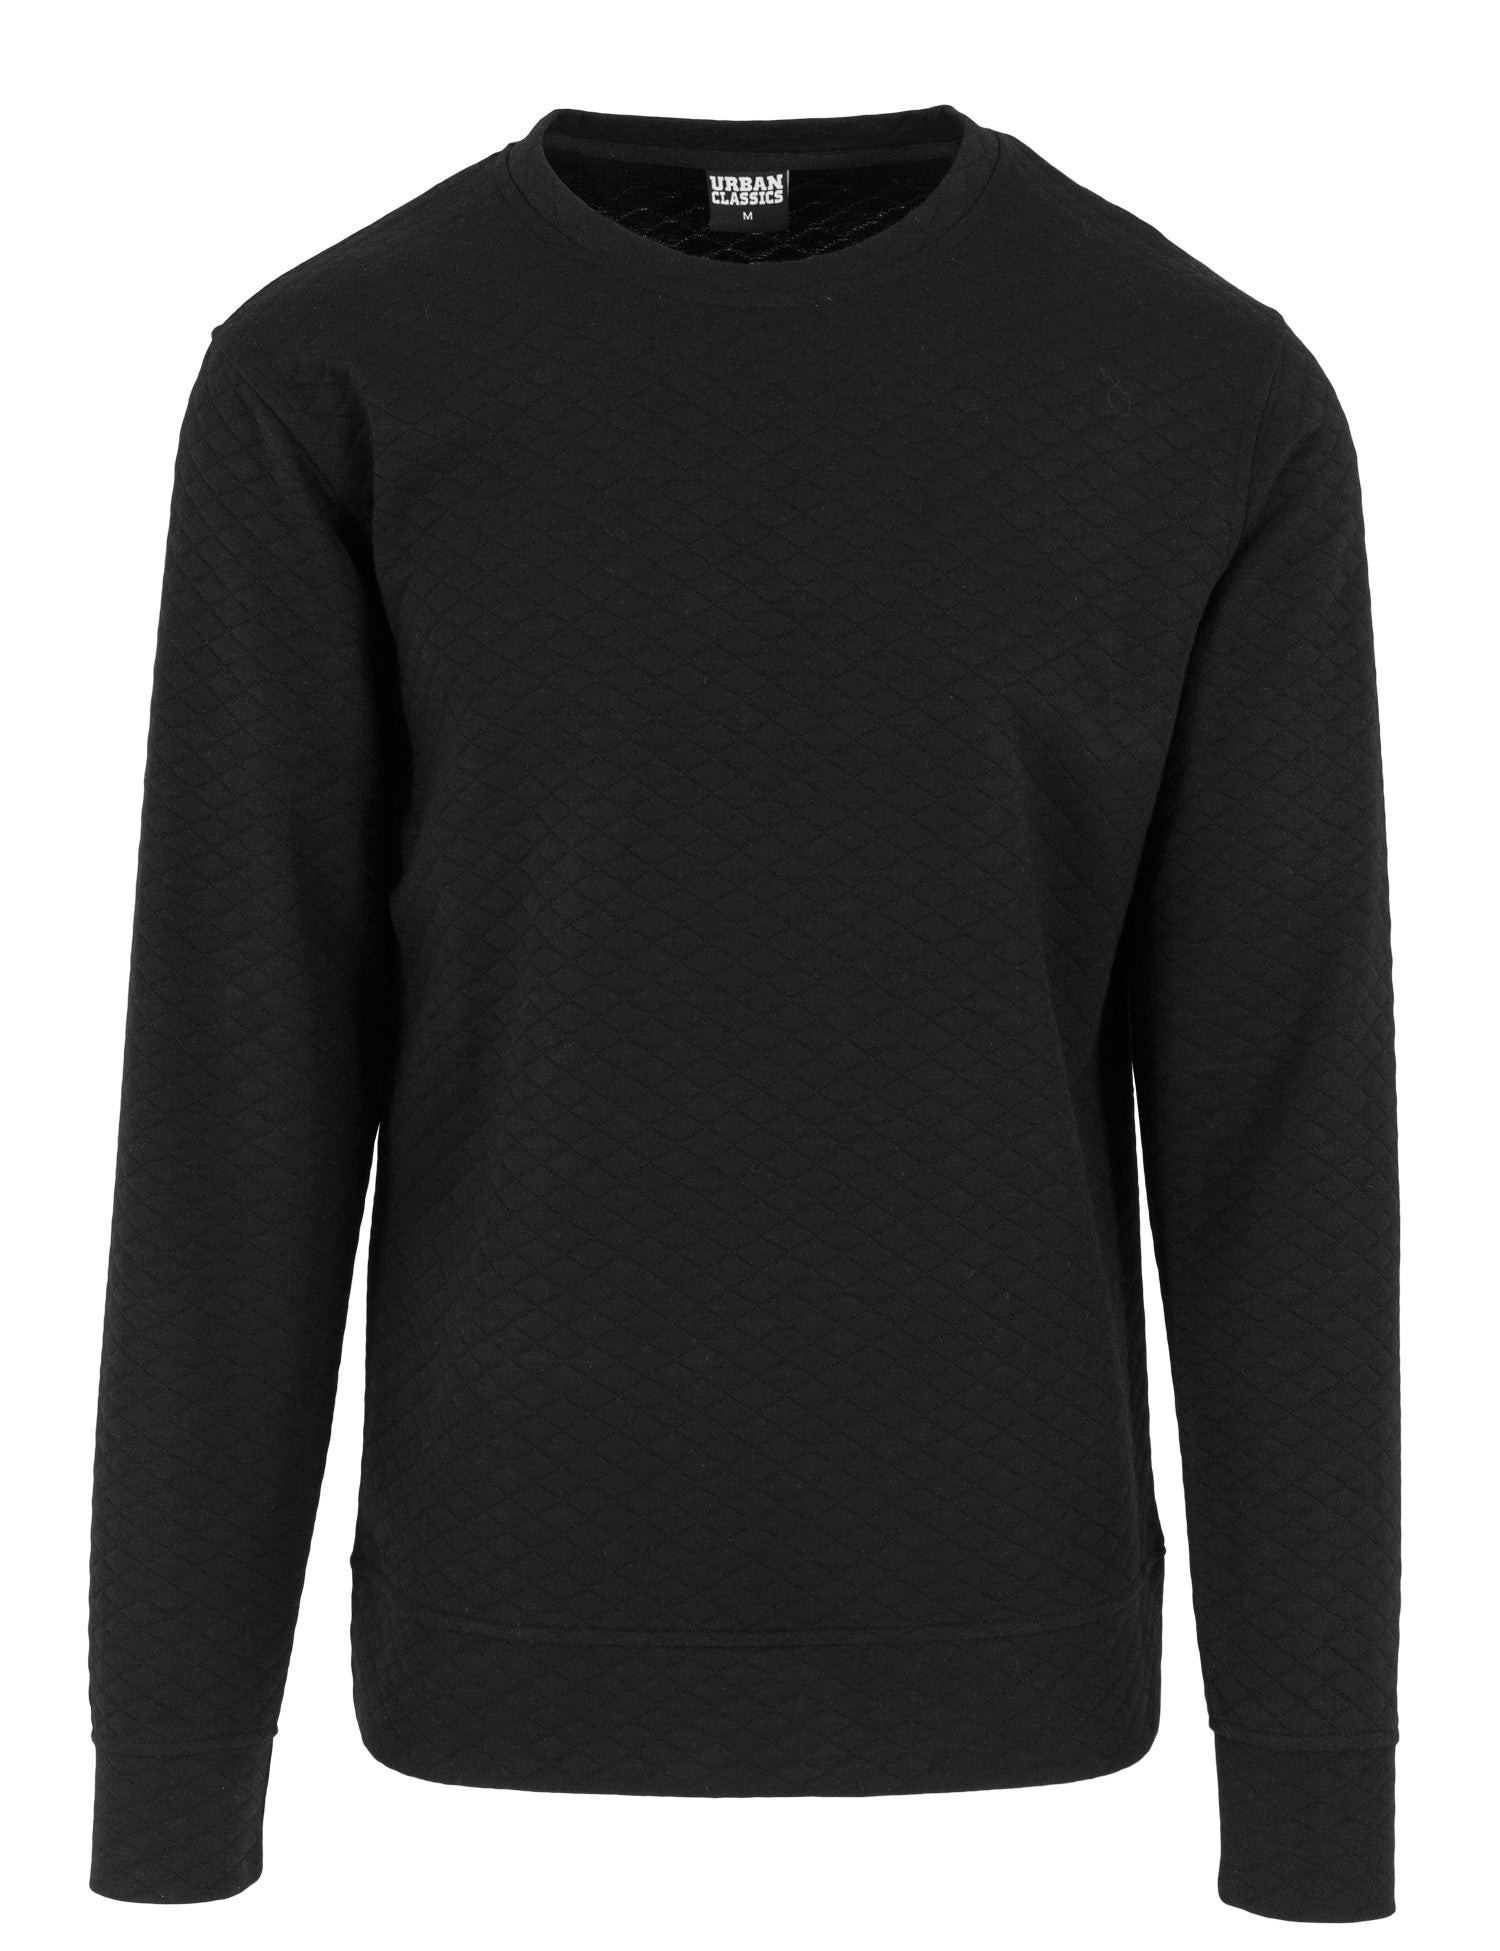 Diamond Quilt Crewneck TB1109 Black